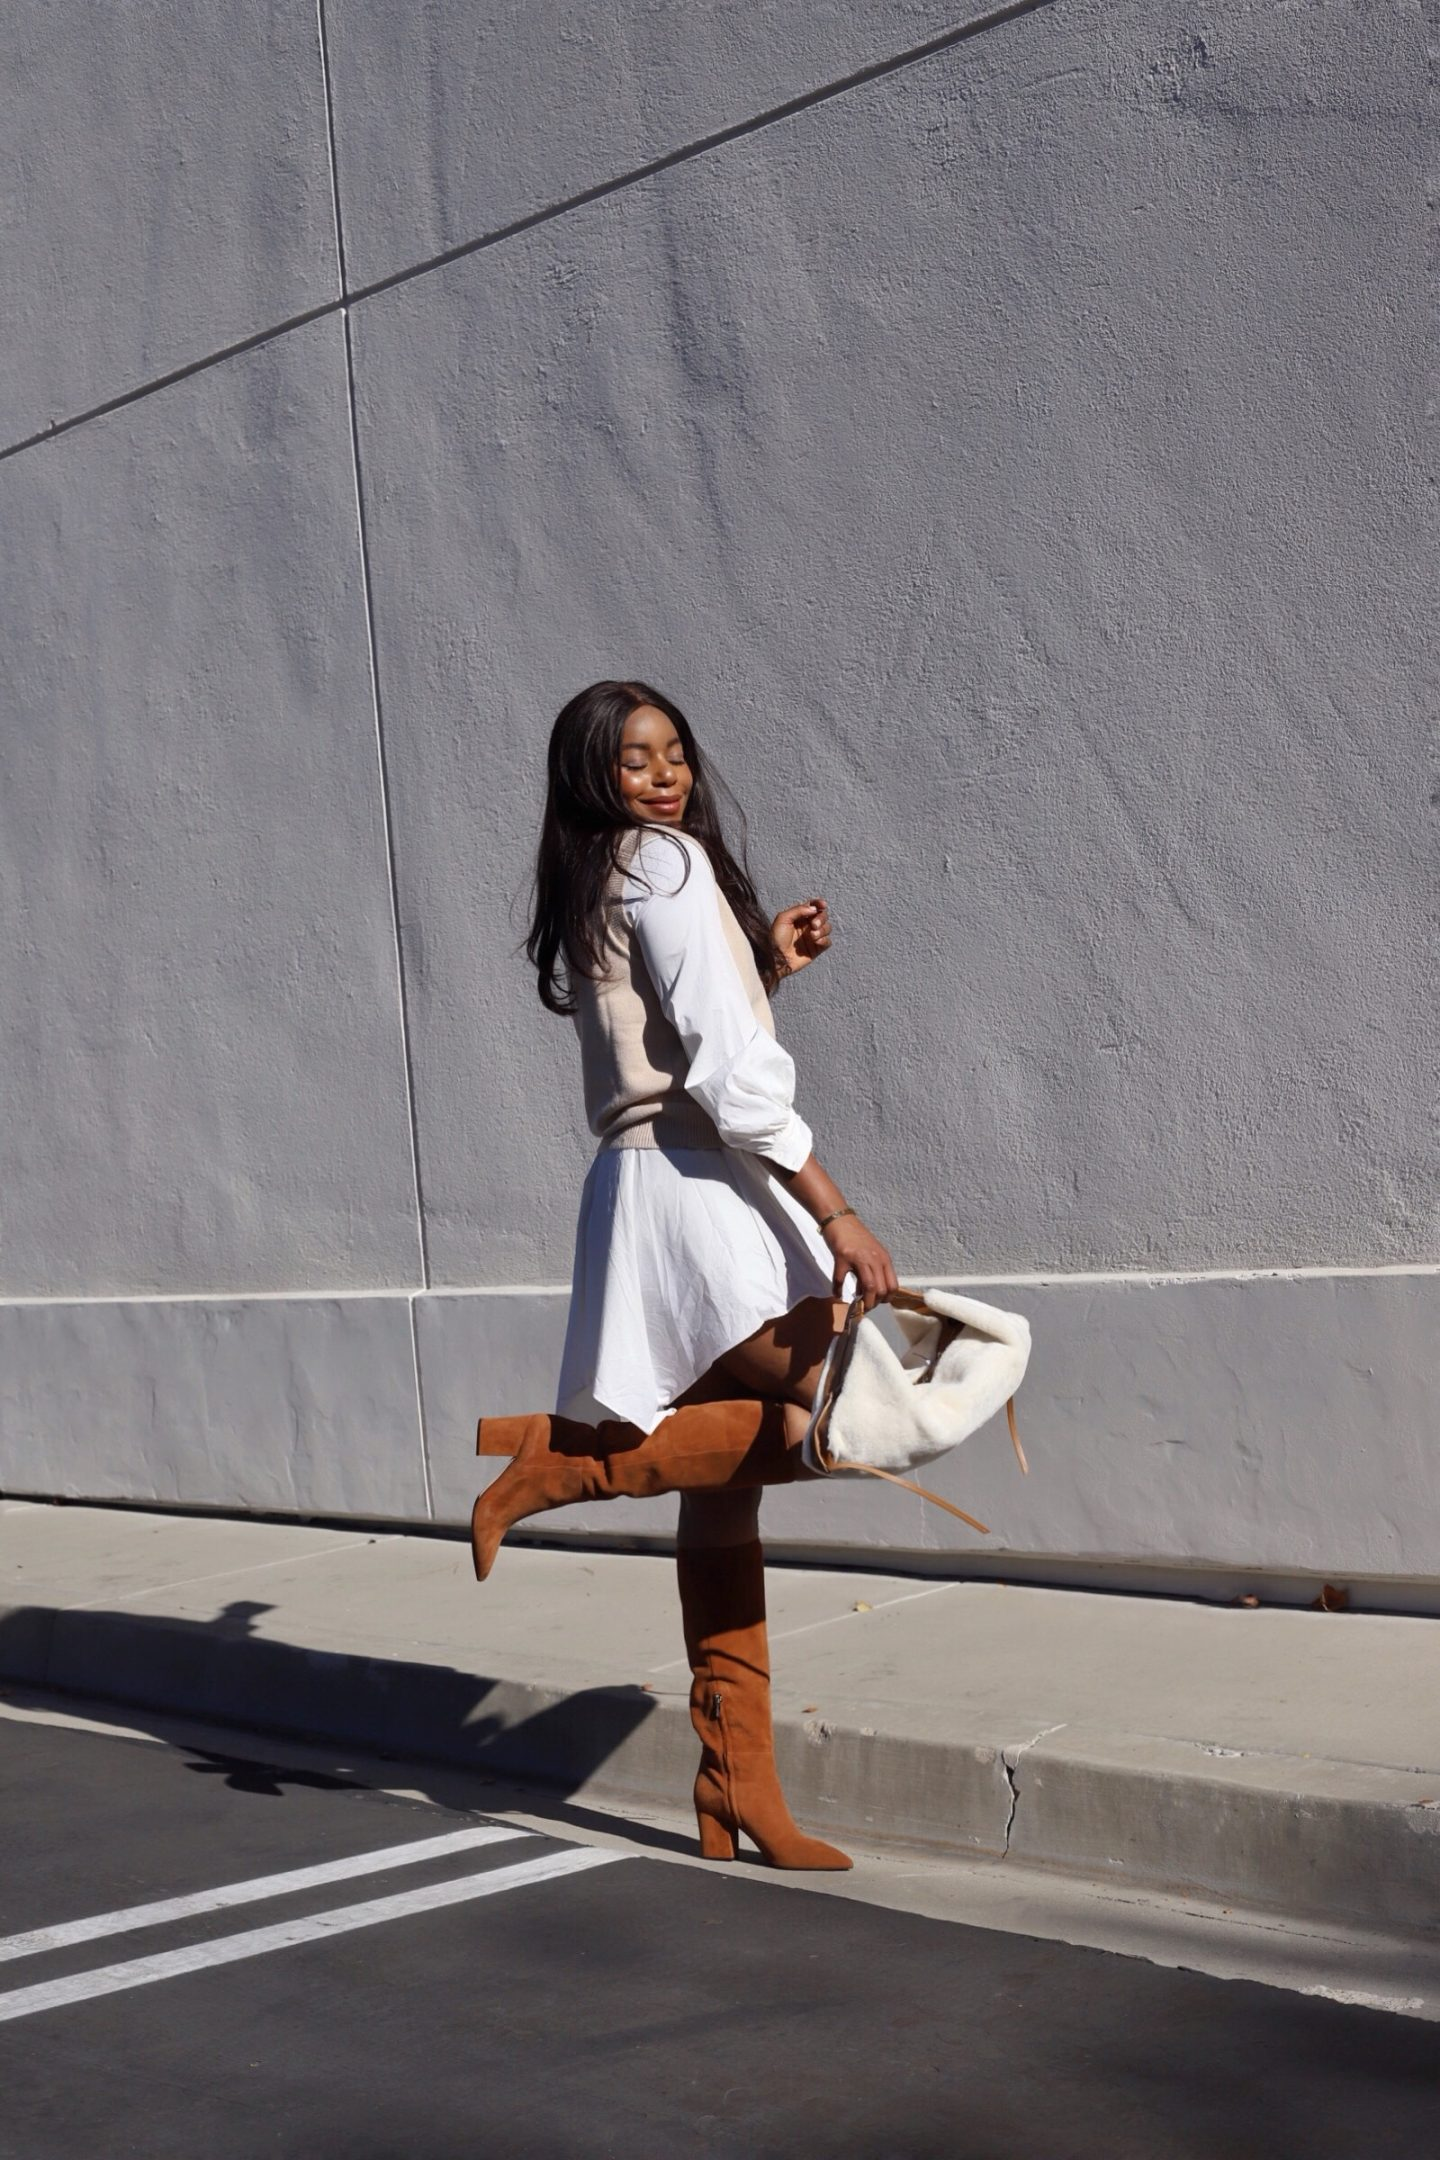 Saks Off 5th Sergio Rossi Suede Boots 3.1 Phillip Lim Shearling Bag